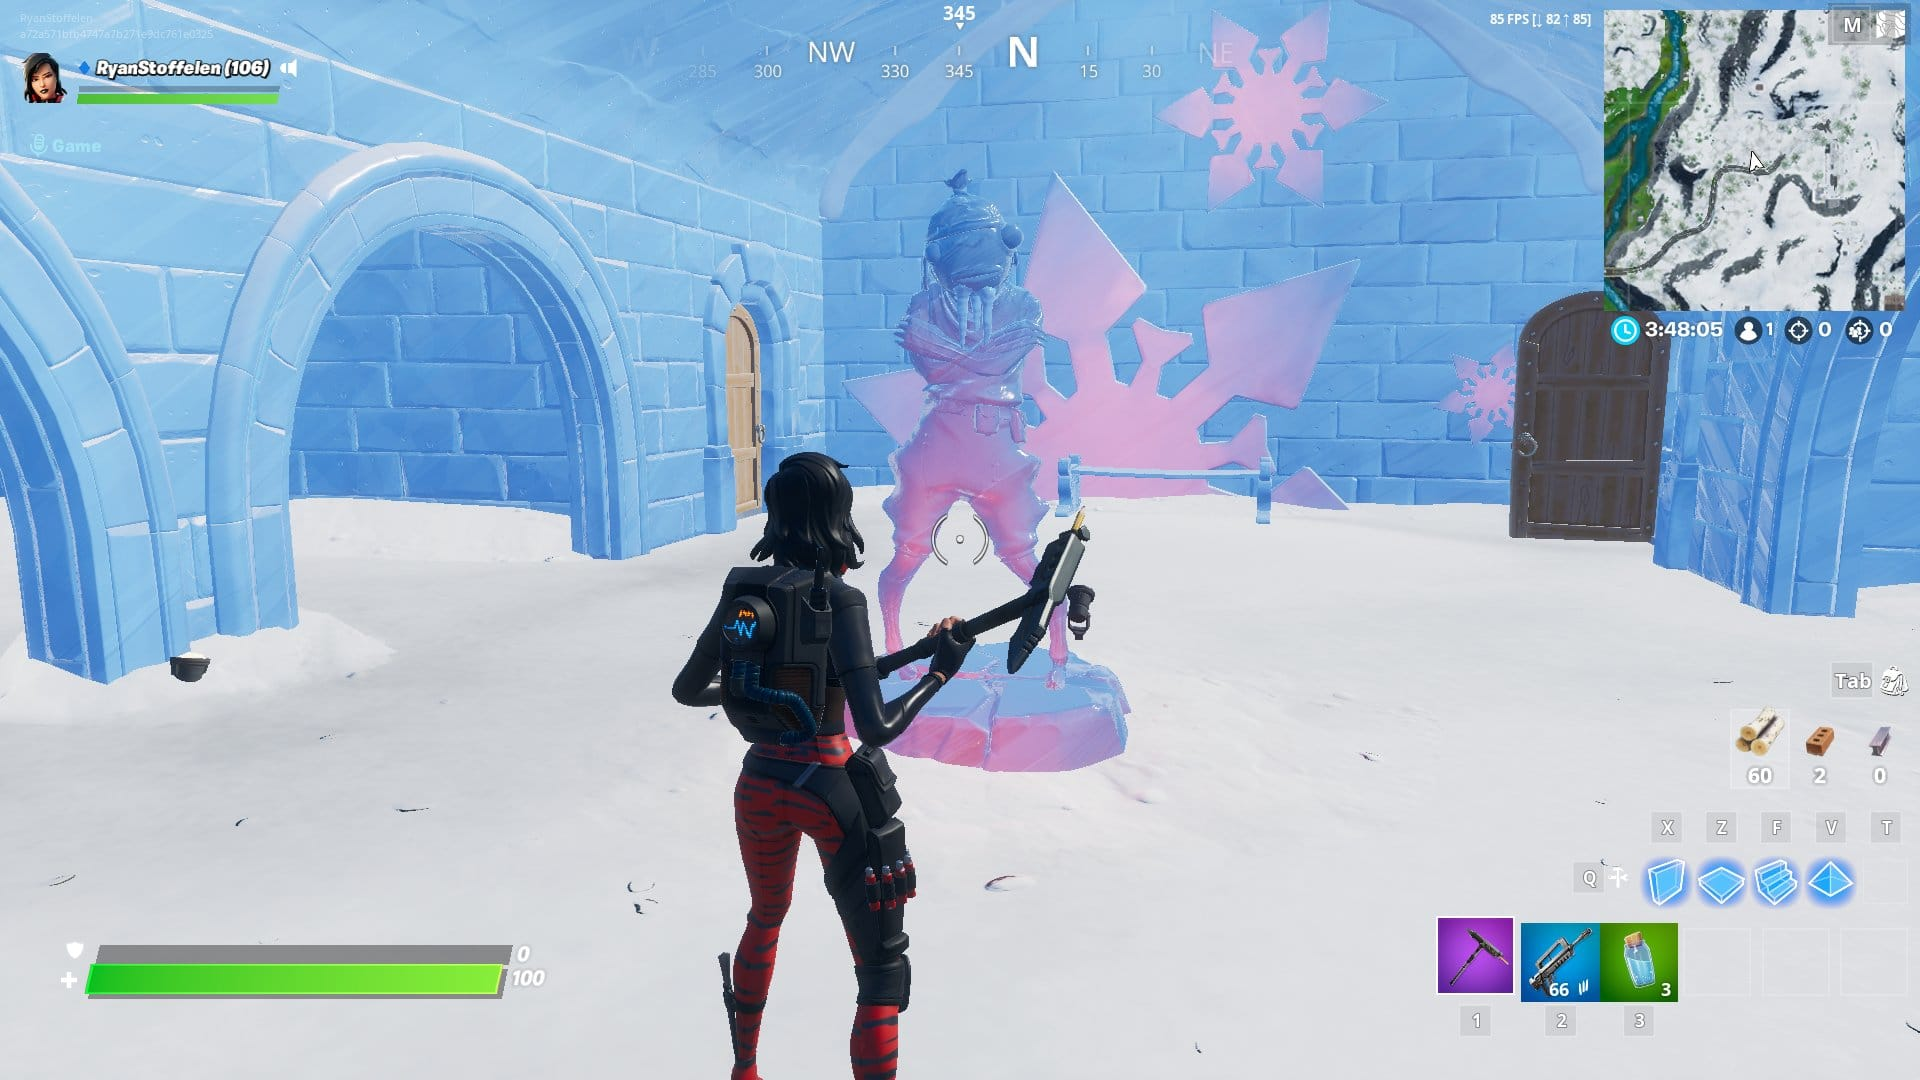 Fortnite v11.30 Map Changes - Frozen Fishsticks Sculpture